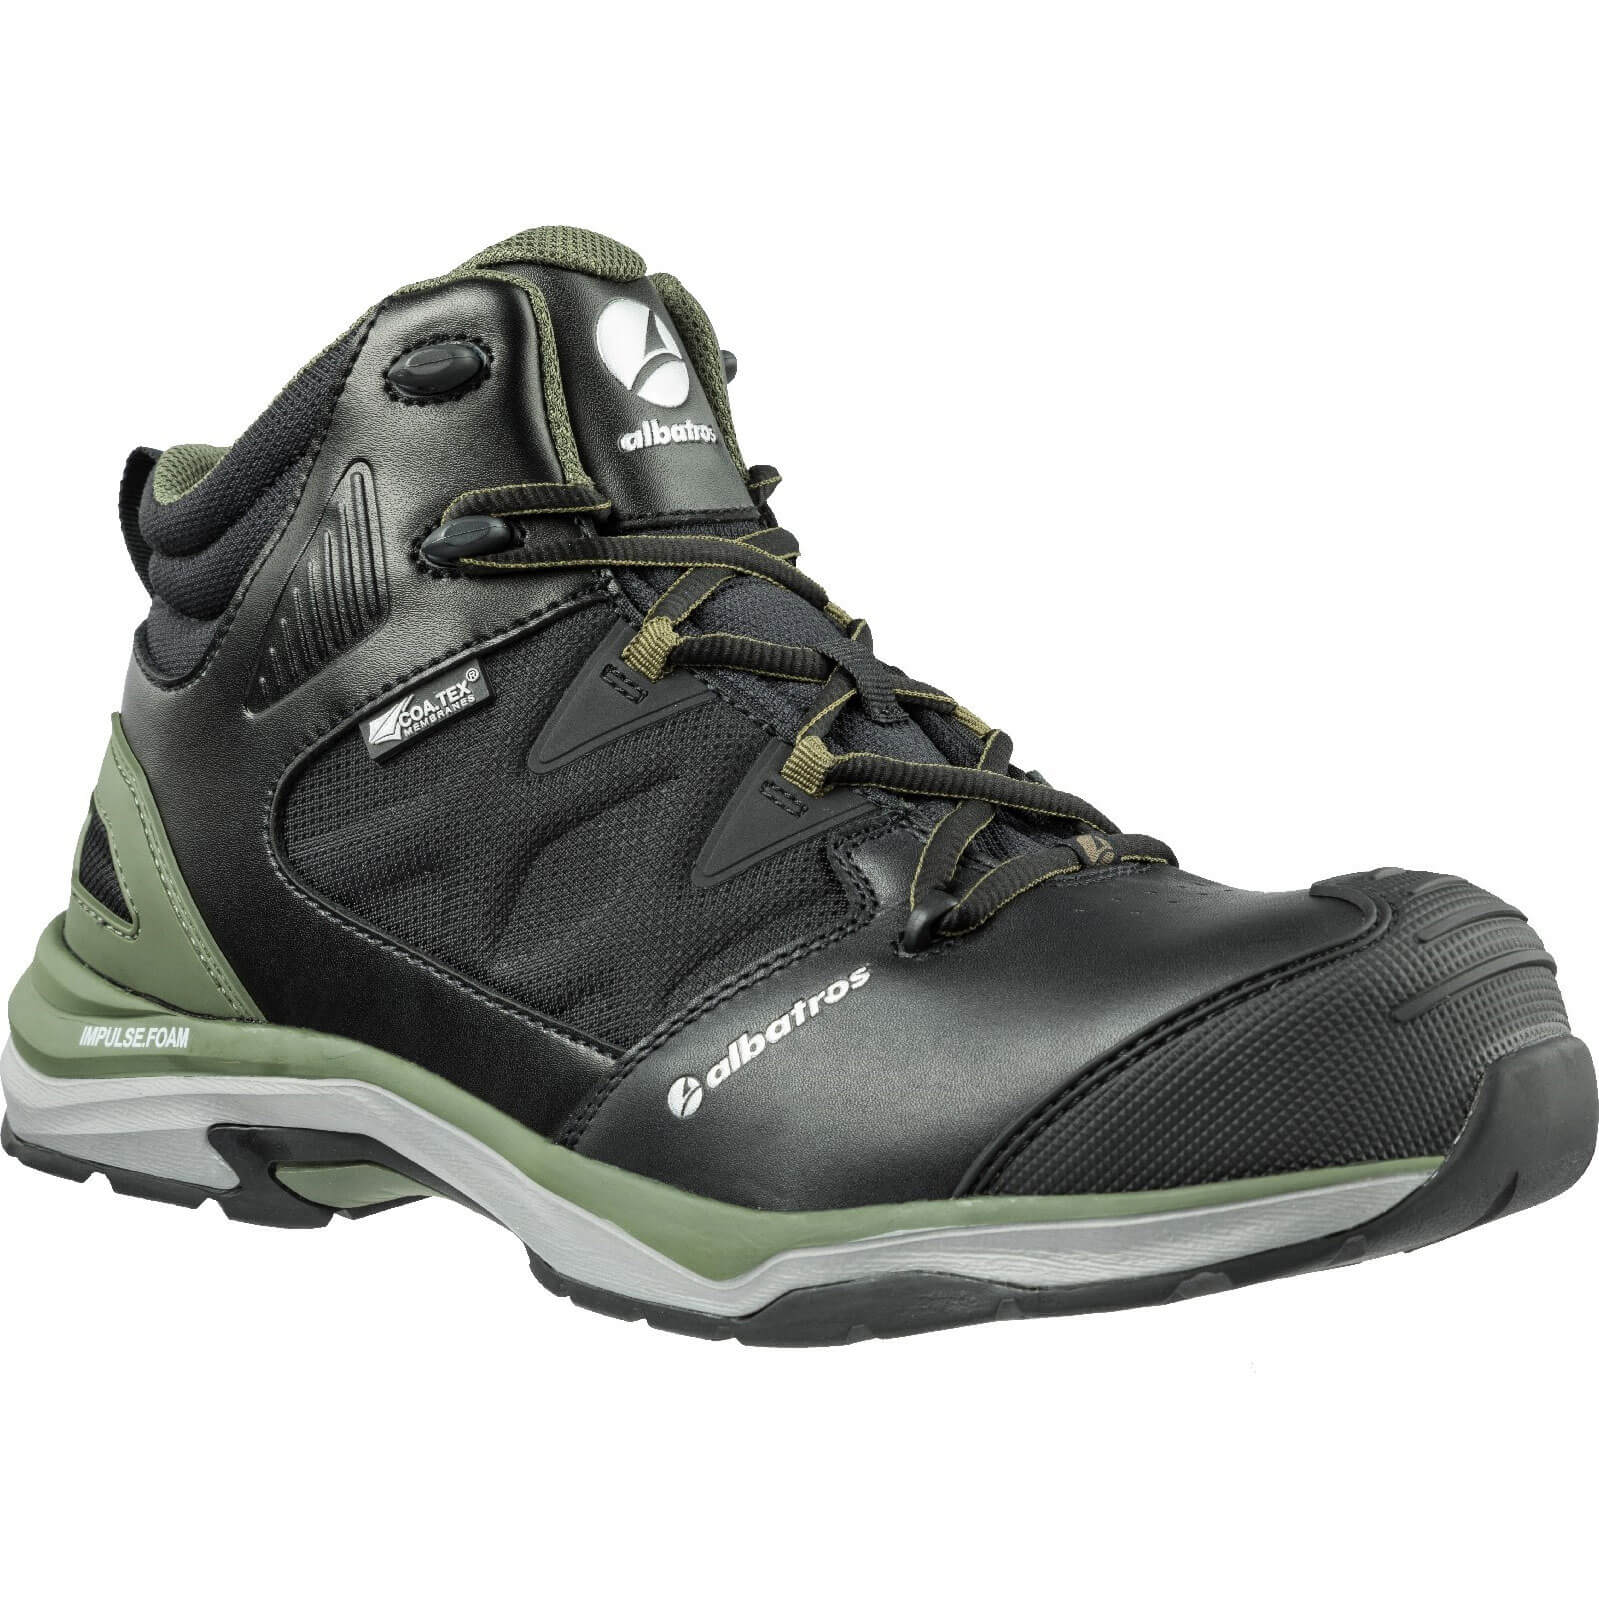 Image of Albatros Mens Ultratrail Olive Ctx Mid Safety Boots Black / Olive Size 10